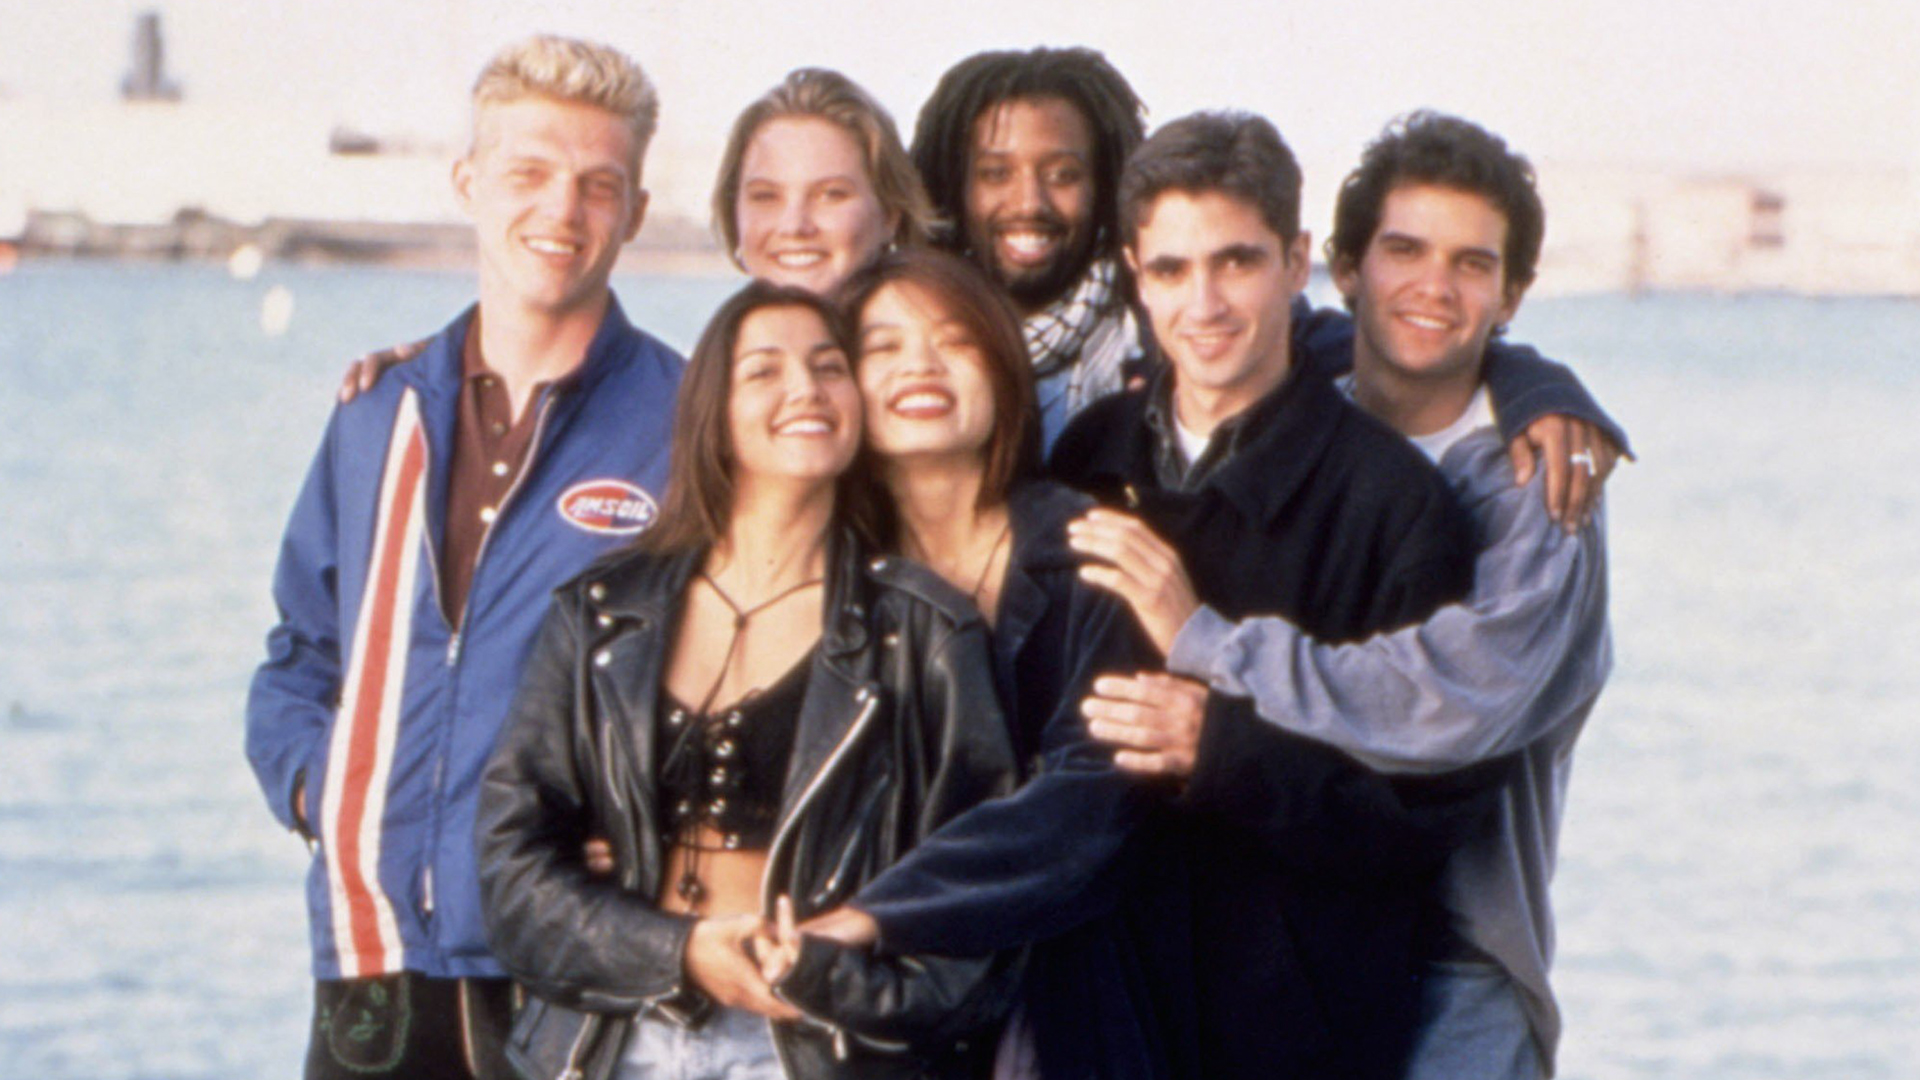 MTV is bringing back 'The Real World' and other classic '90s